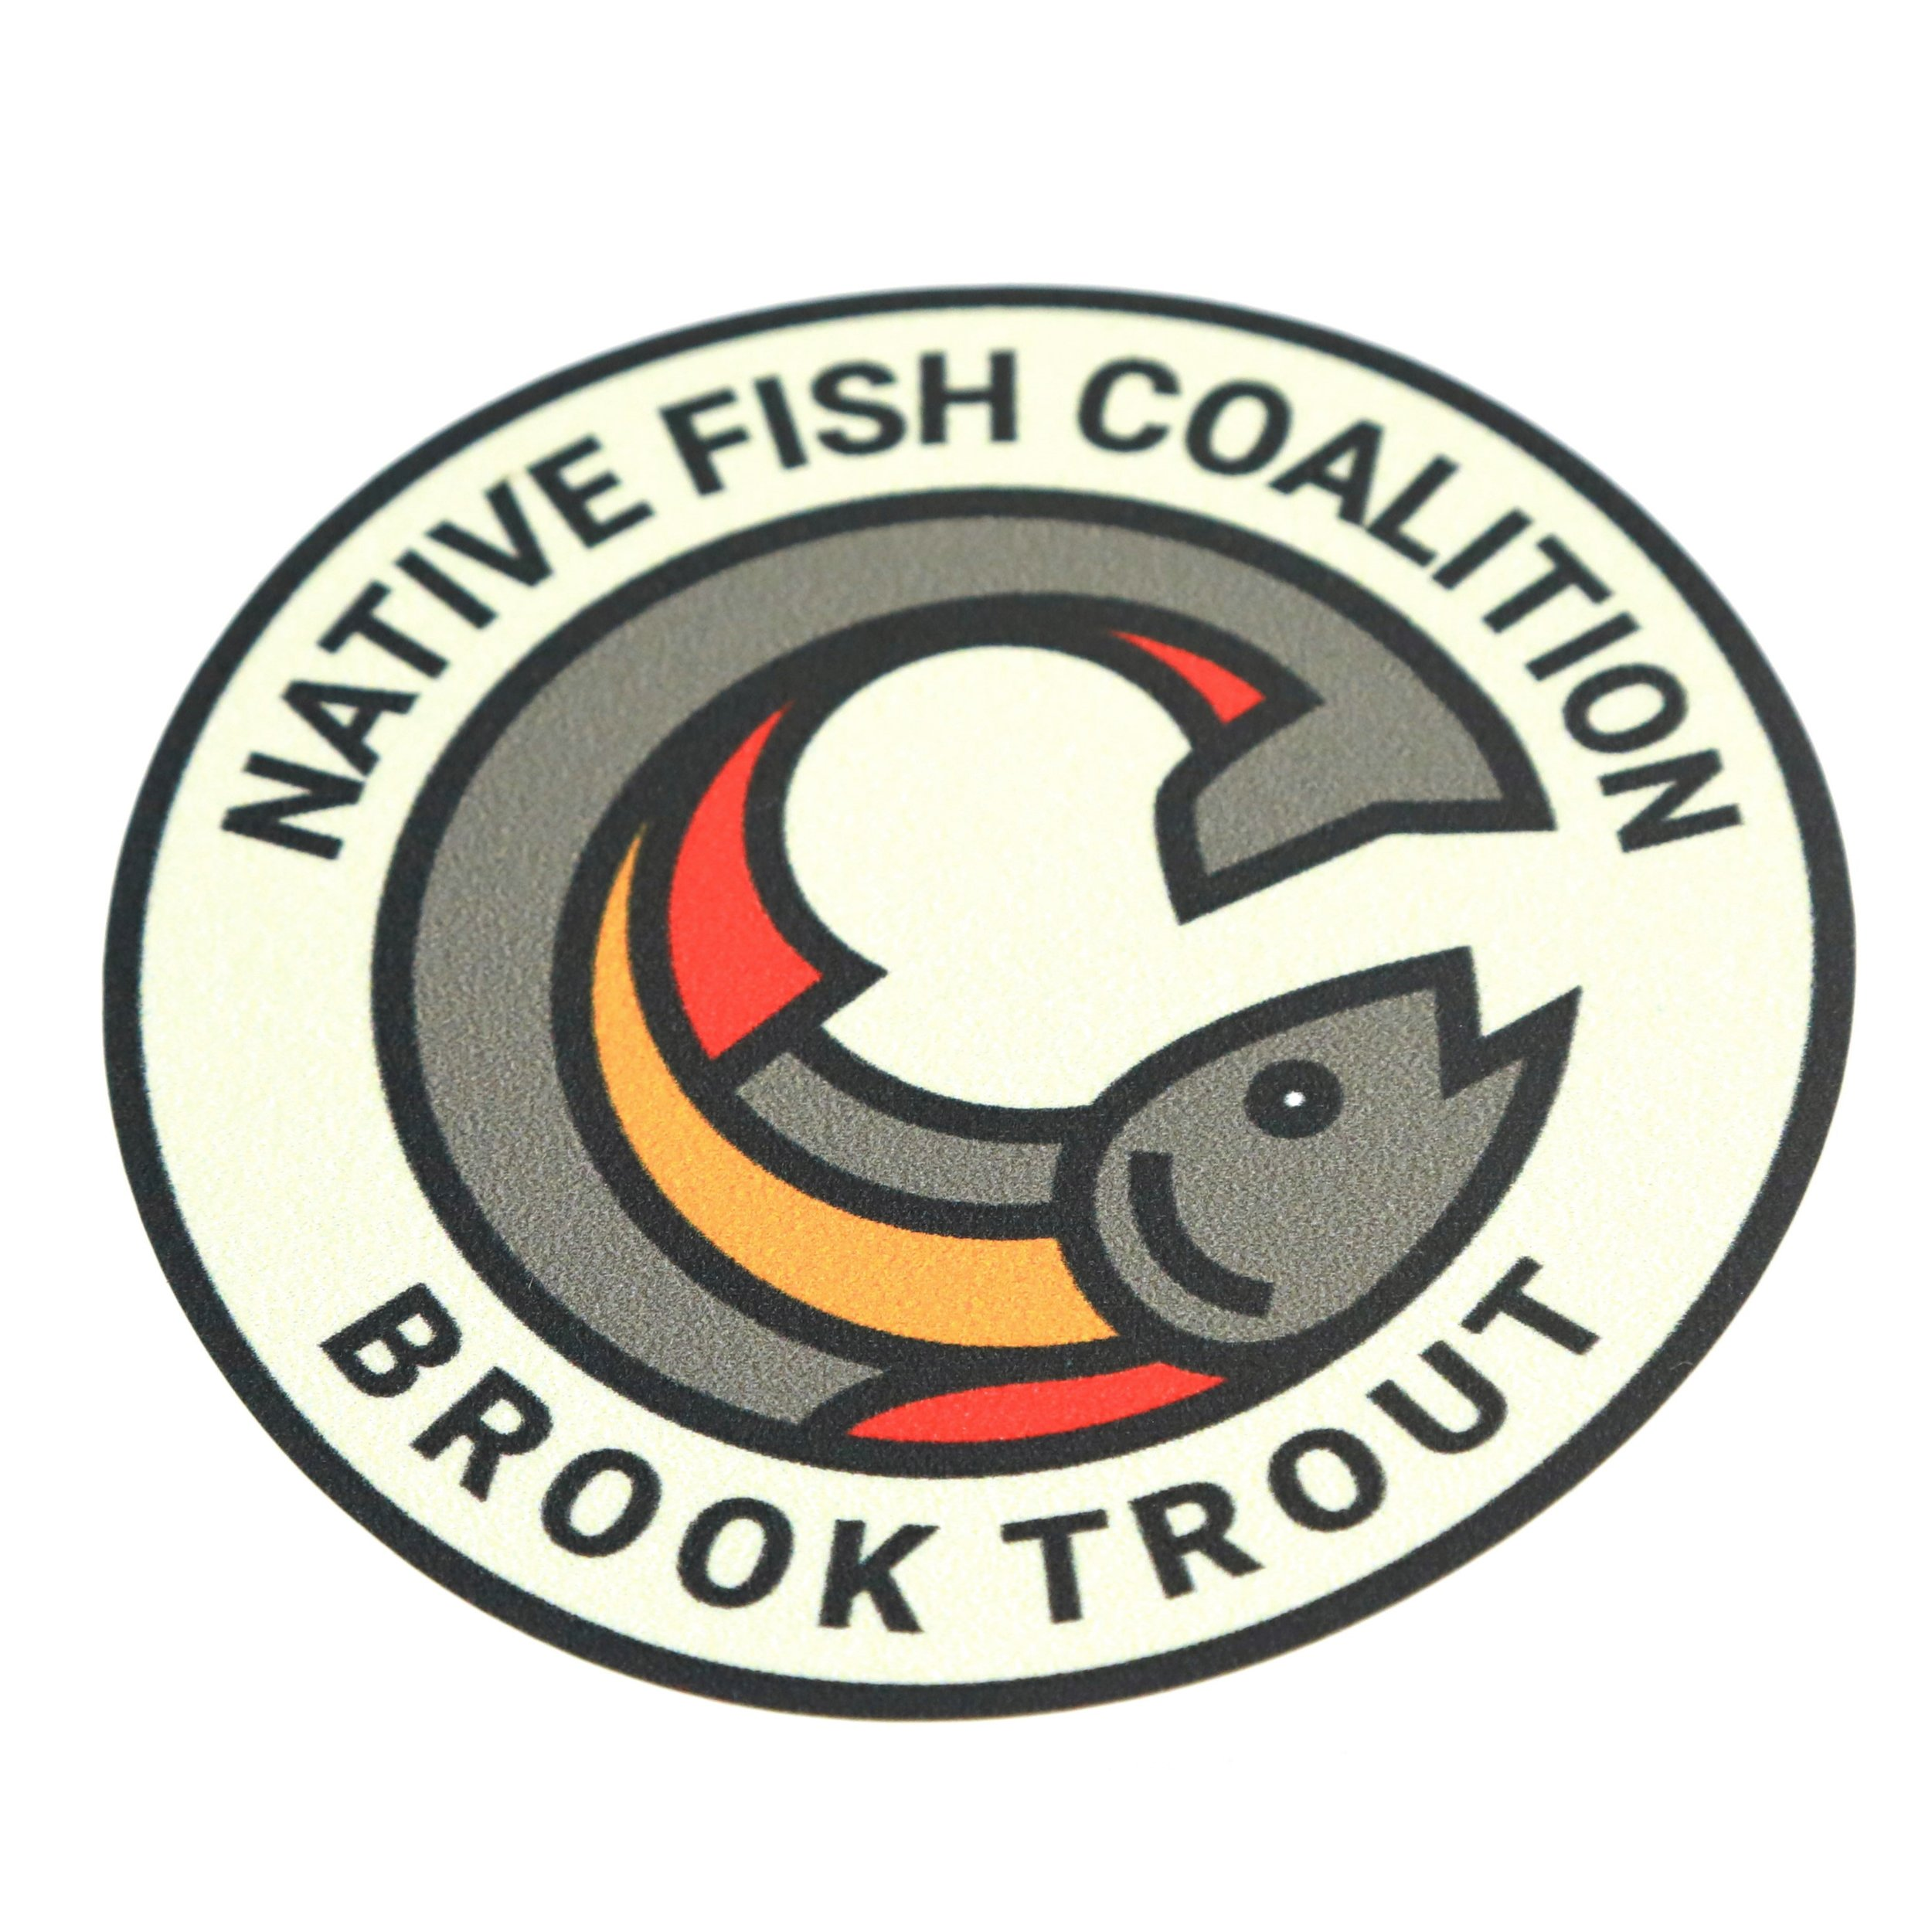 Decal - Brook Trout.JPG